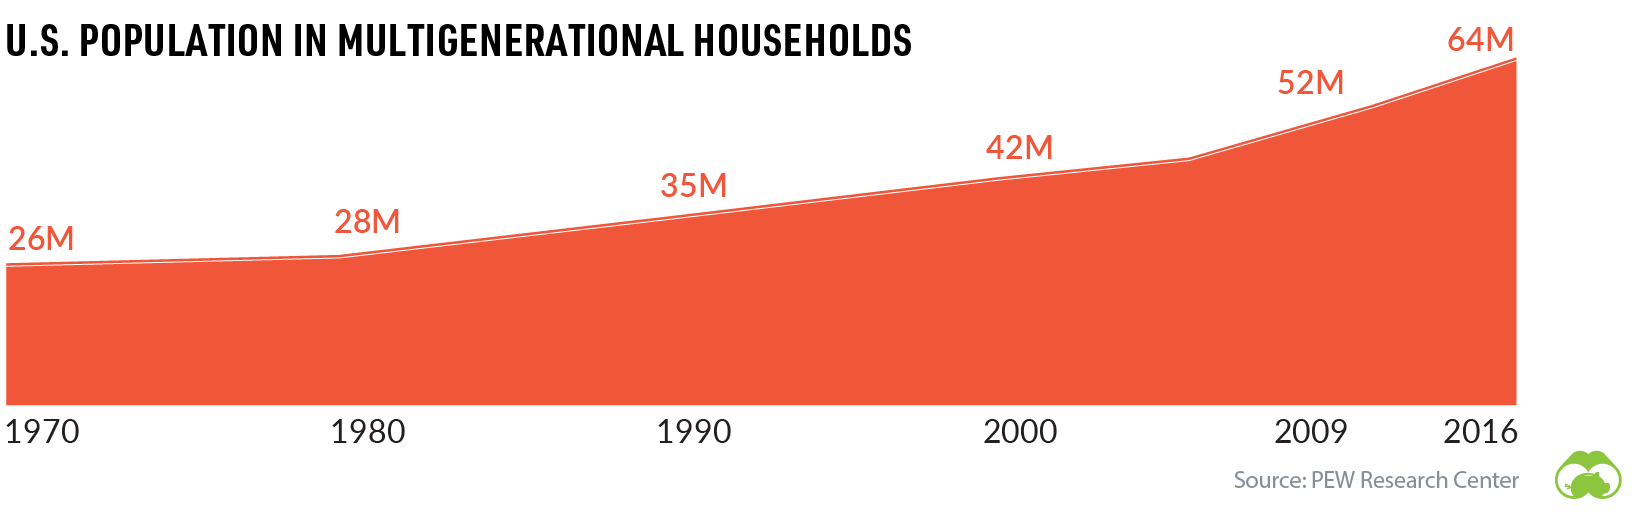 multigenerational households in the us